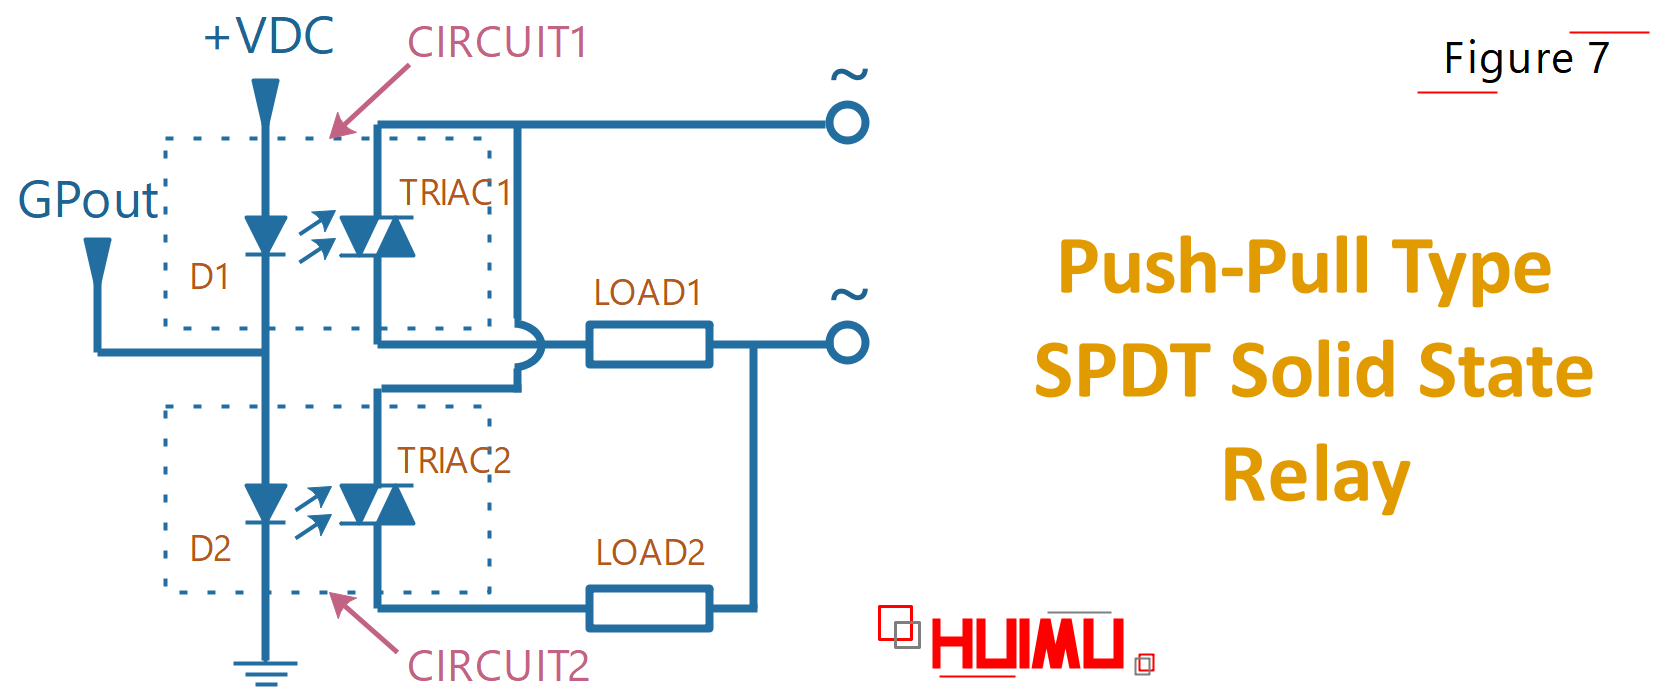 how does a single pole double throw switch work, single pole double throw slide switch, single pole double throw relay, spdt micro switch, spdt relay switch, spdt relay working, spdt switch circuit, spdt toggle switch wiring. More detail via www.@huimultd.com